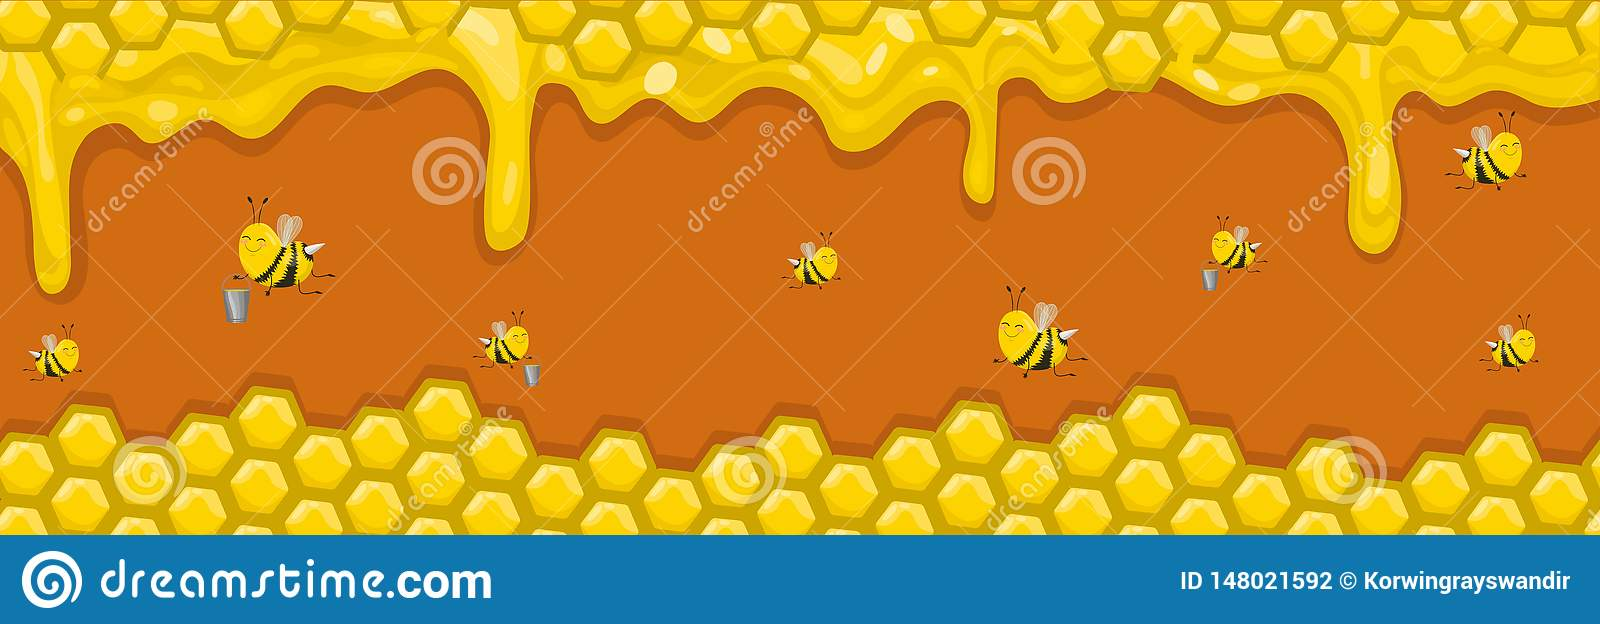 Horizontal banner with honeycombs, honey and bees. Bees carry honey in buckets. Vector illustration